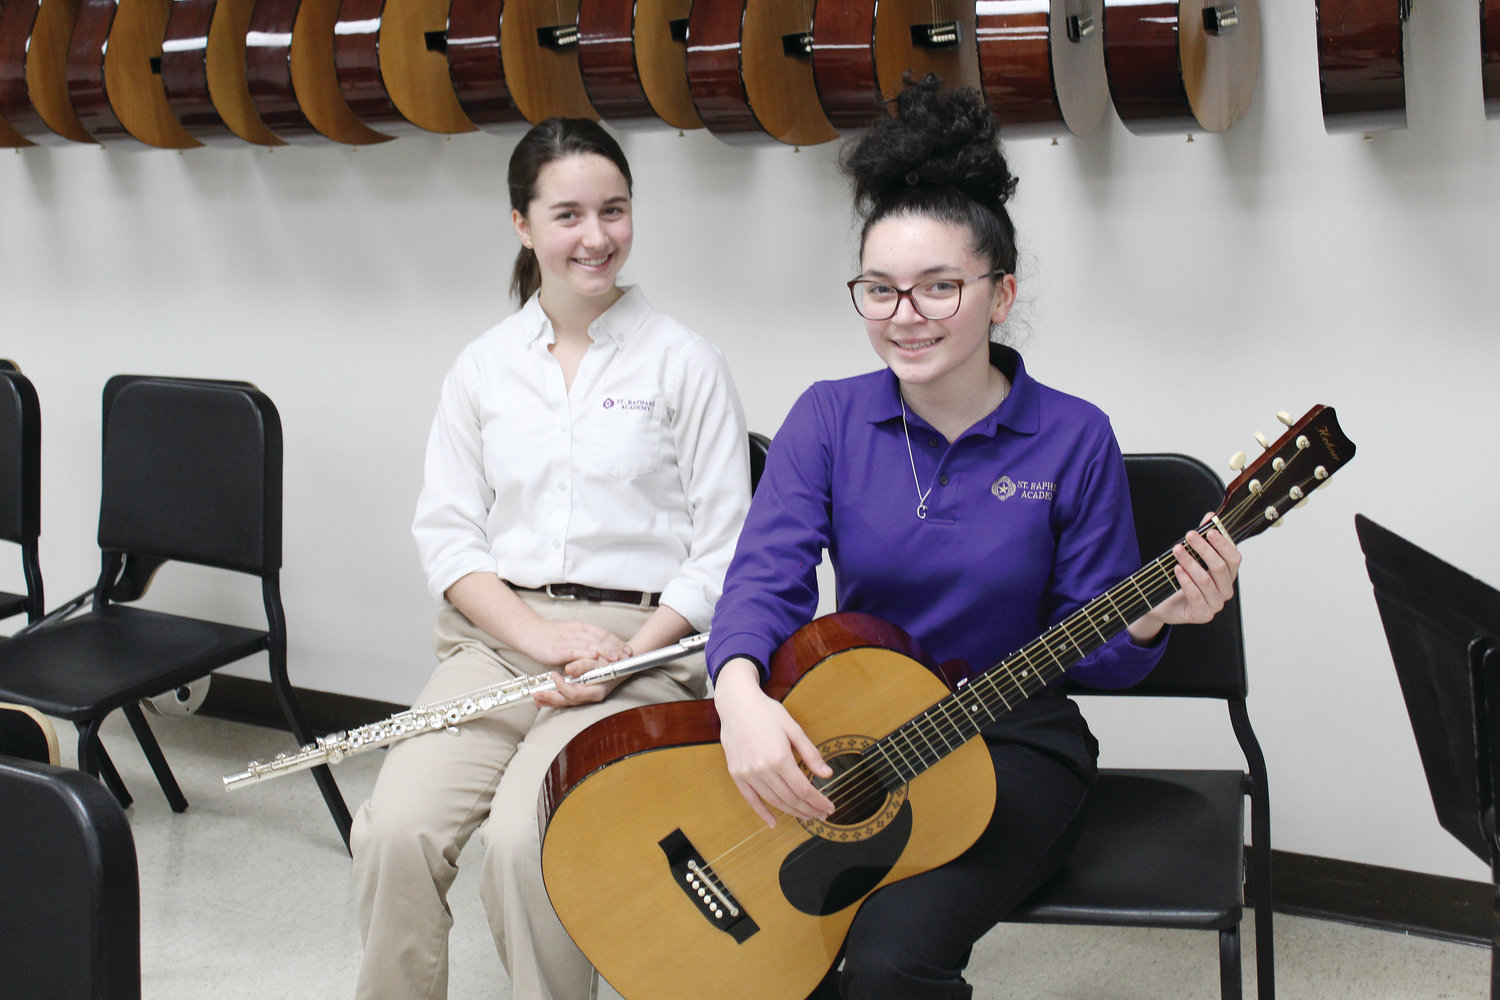 Two students from St. Raphael Academy in Pawtucket were chosen as All-State Musicians. Adelina Steinmetz, at left,  was selected to play flute in the senior division orchestra, and junior Camille Santos, was chosen for the senior division guitar ensemble.